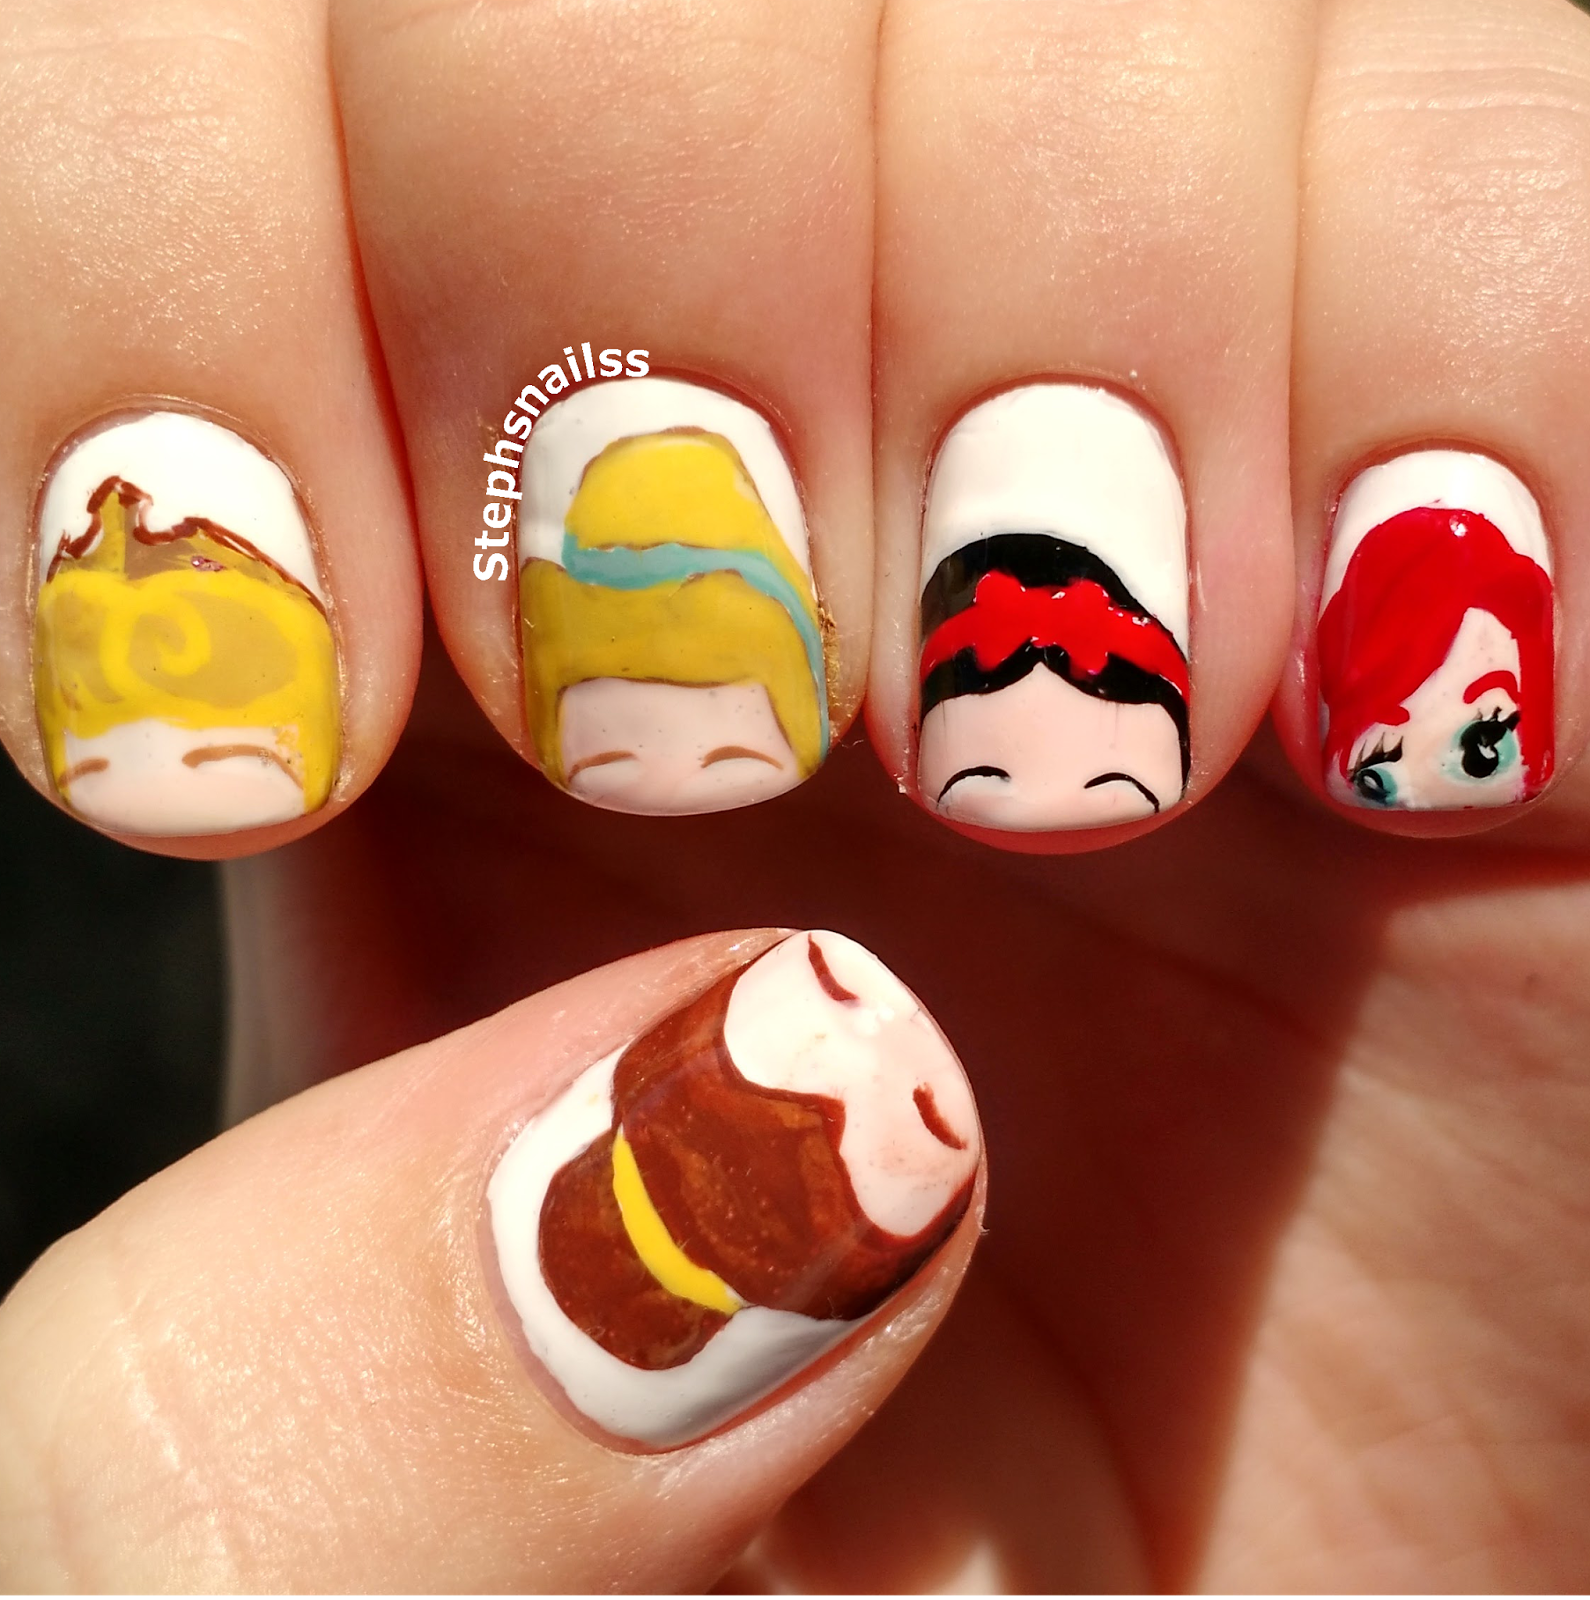 26+ Disney Nail Art Designs, Ideas | Design Trends - Premium PSD ...